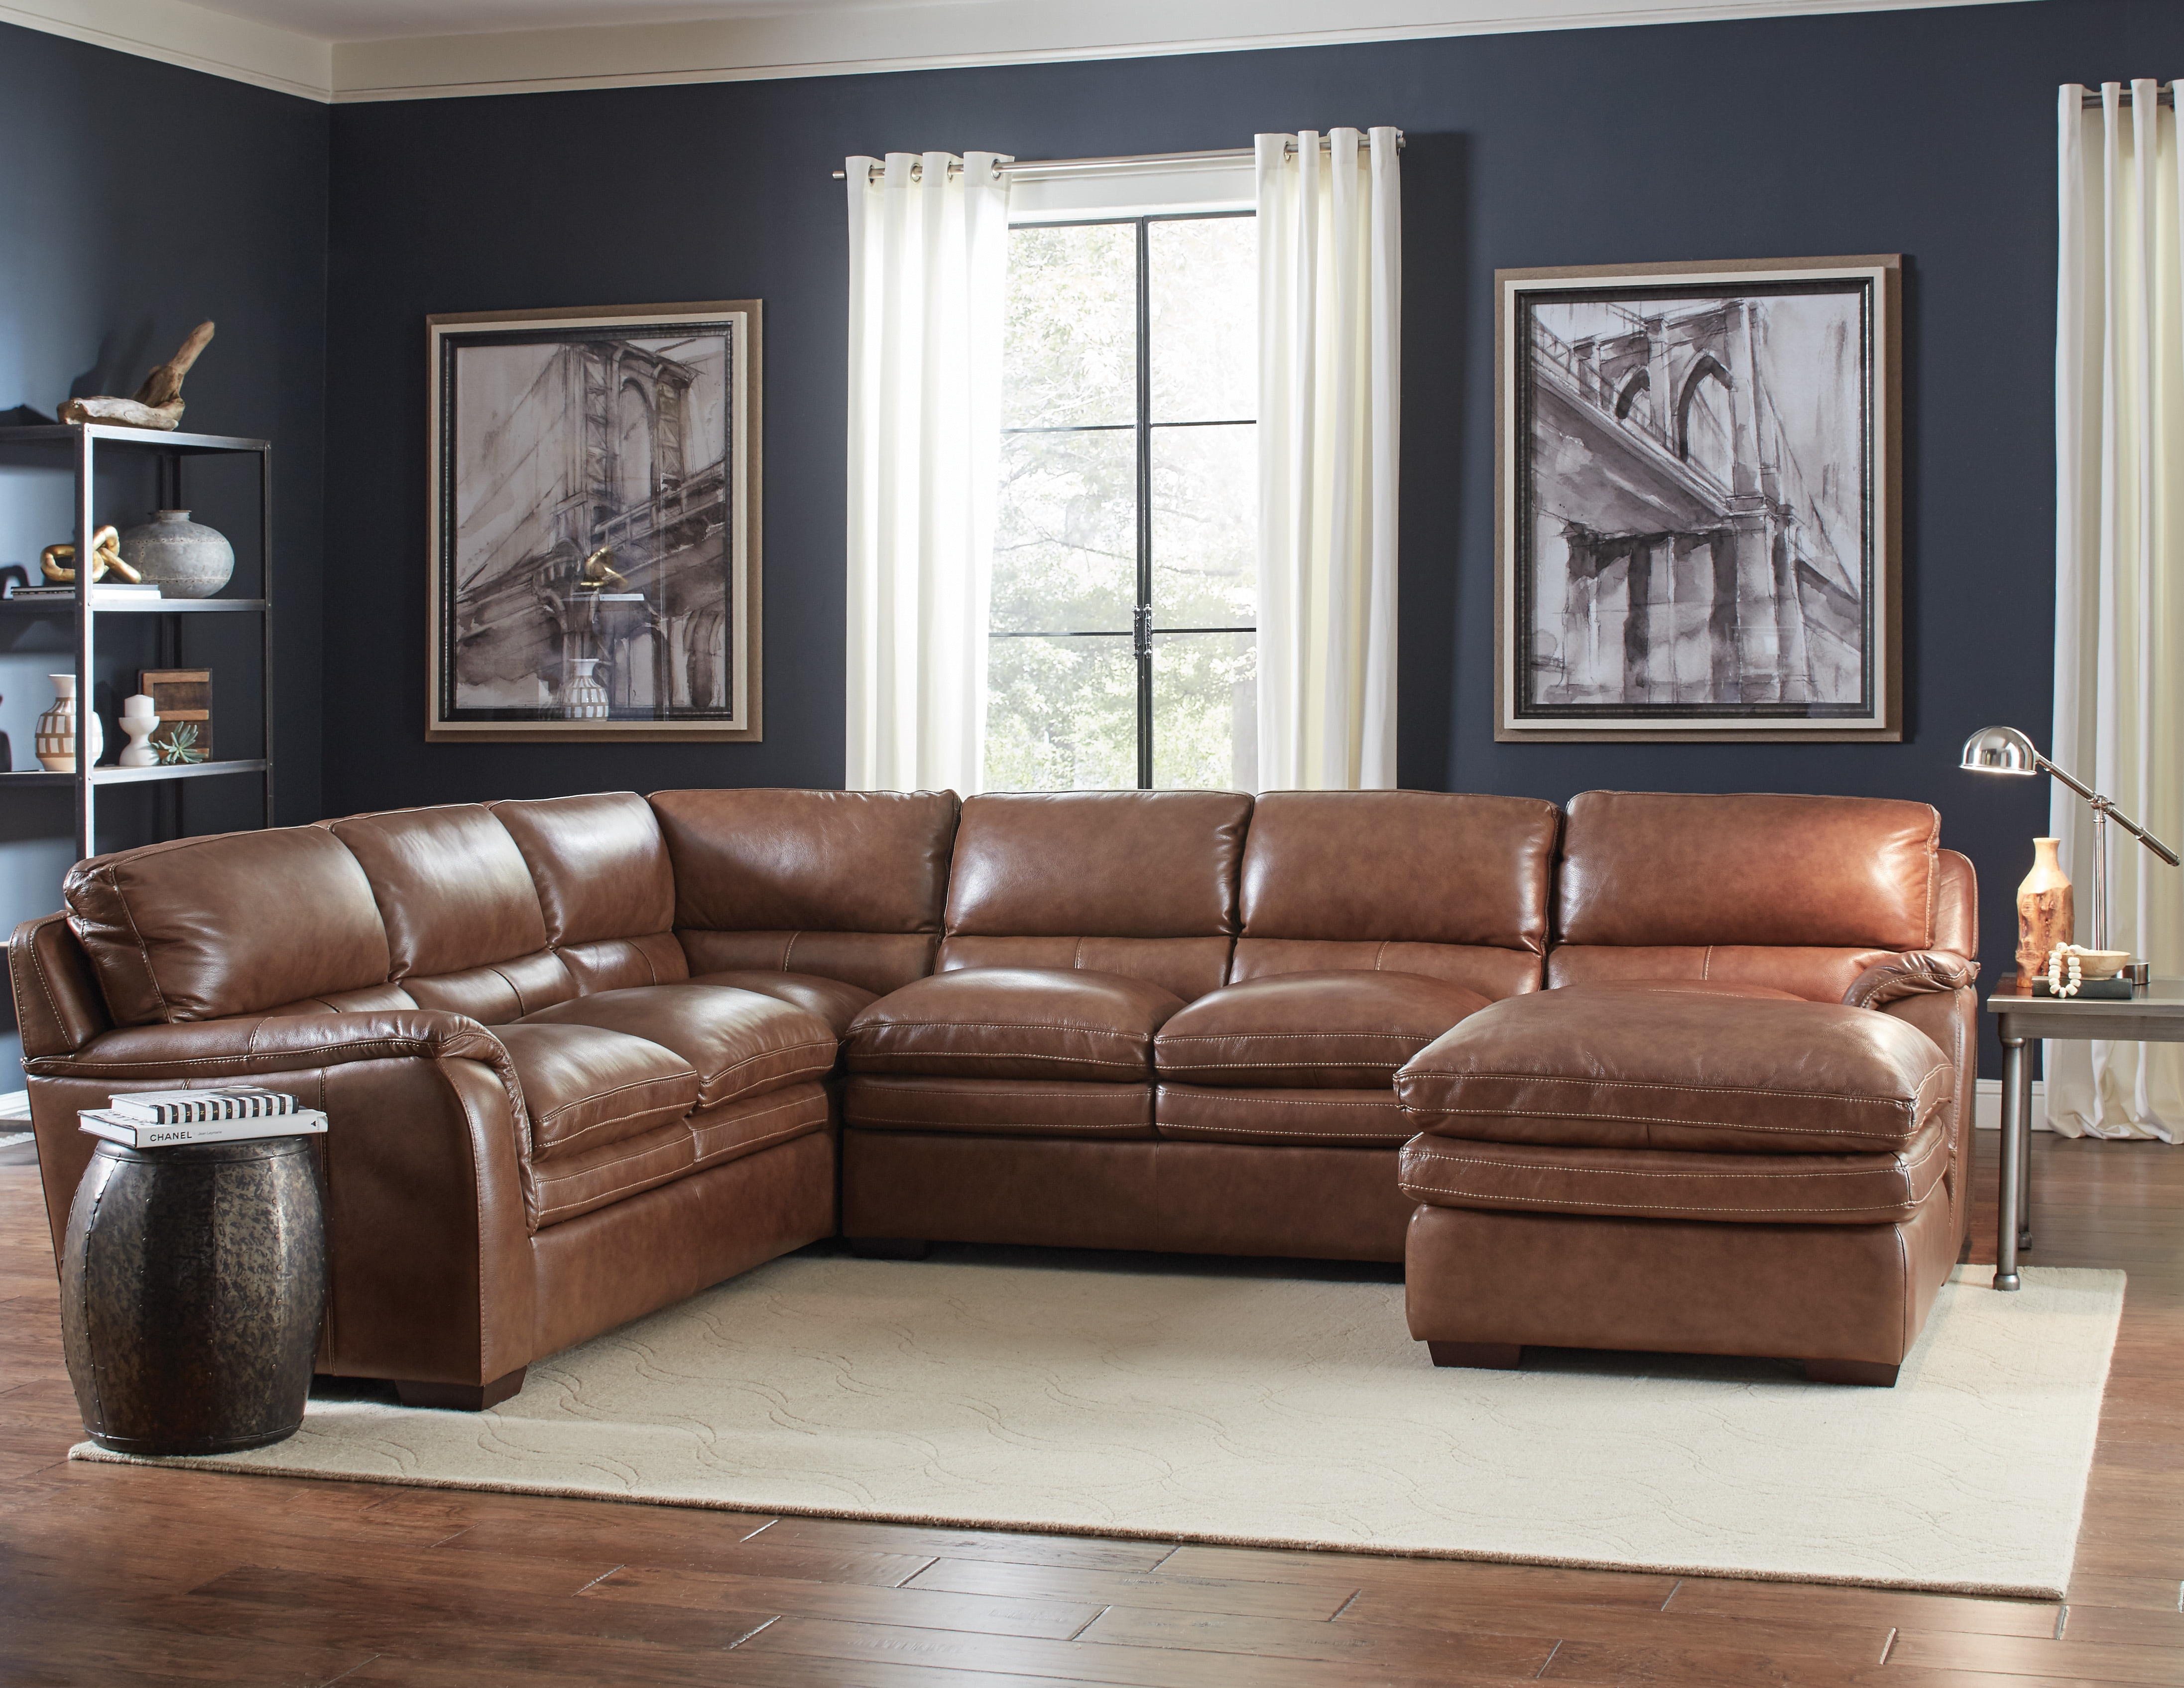 Living Room Furniture - Merdian 3 pc Leather Sectional